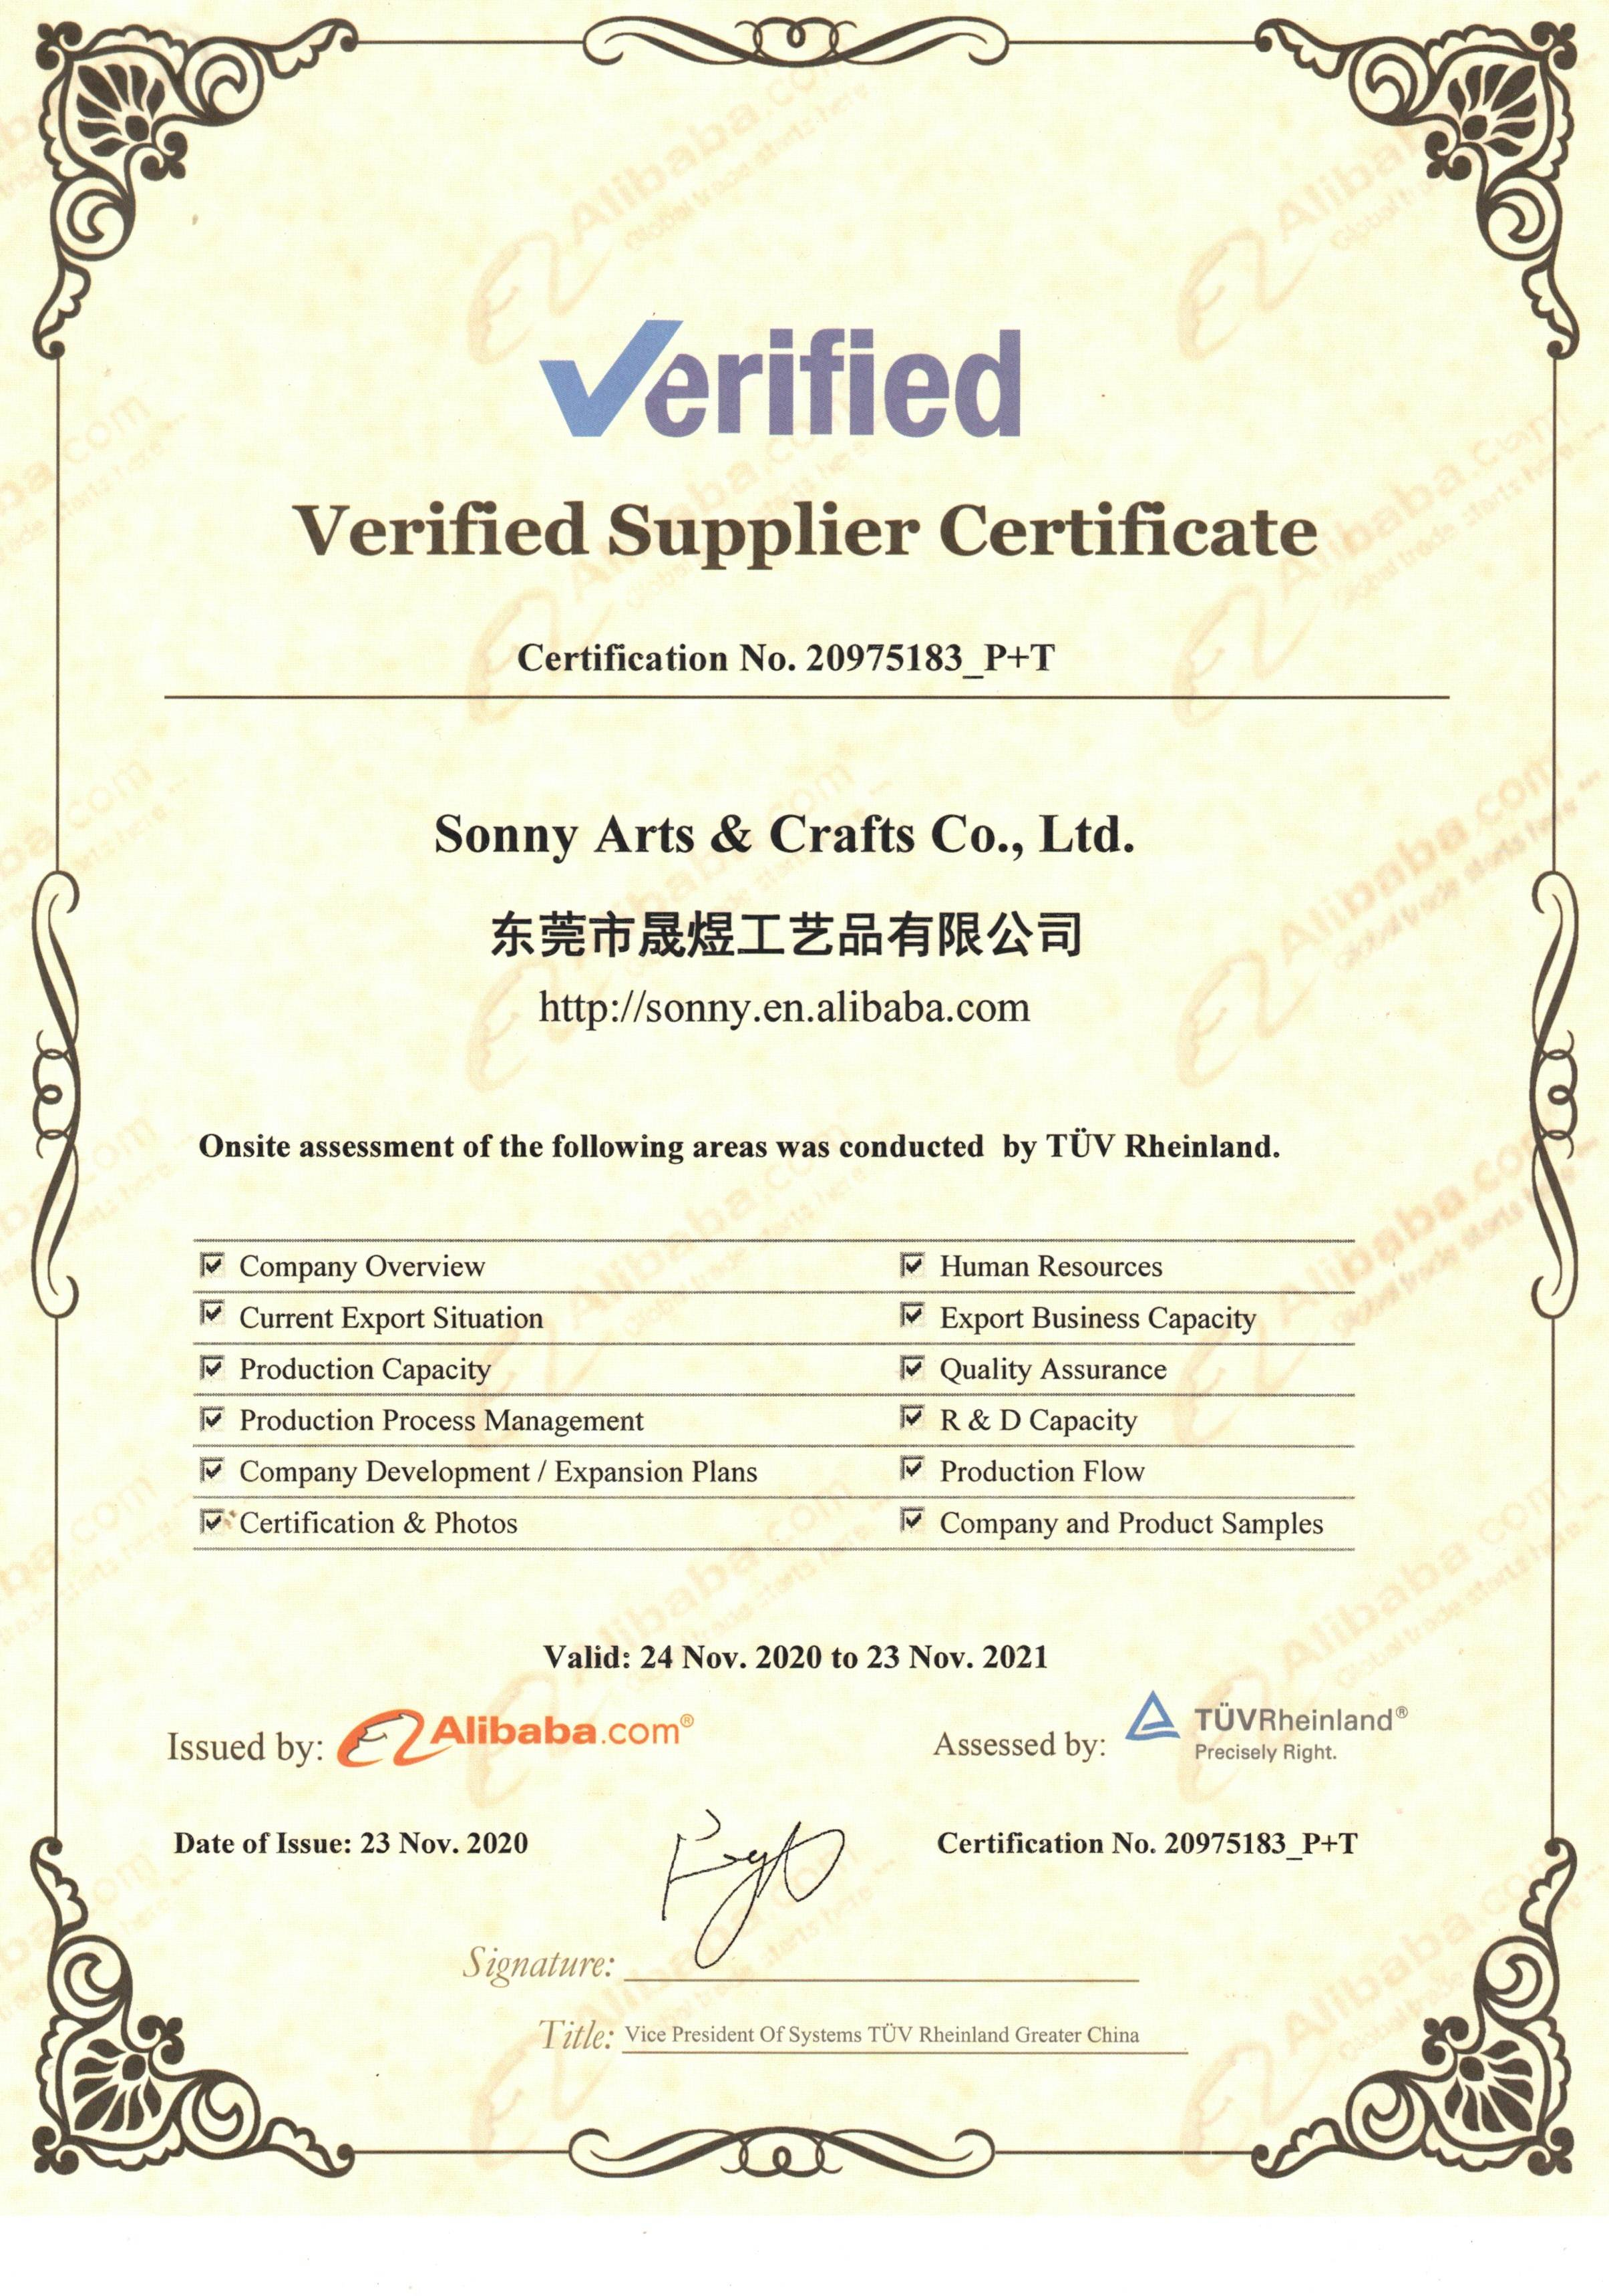 Verified Supplier Certificate